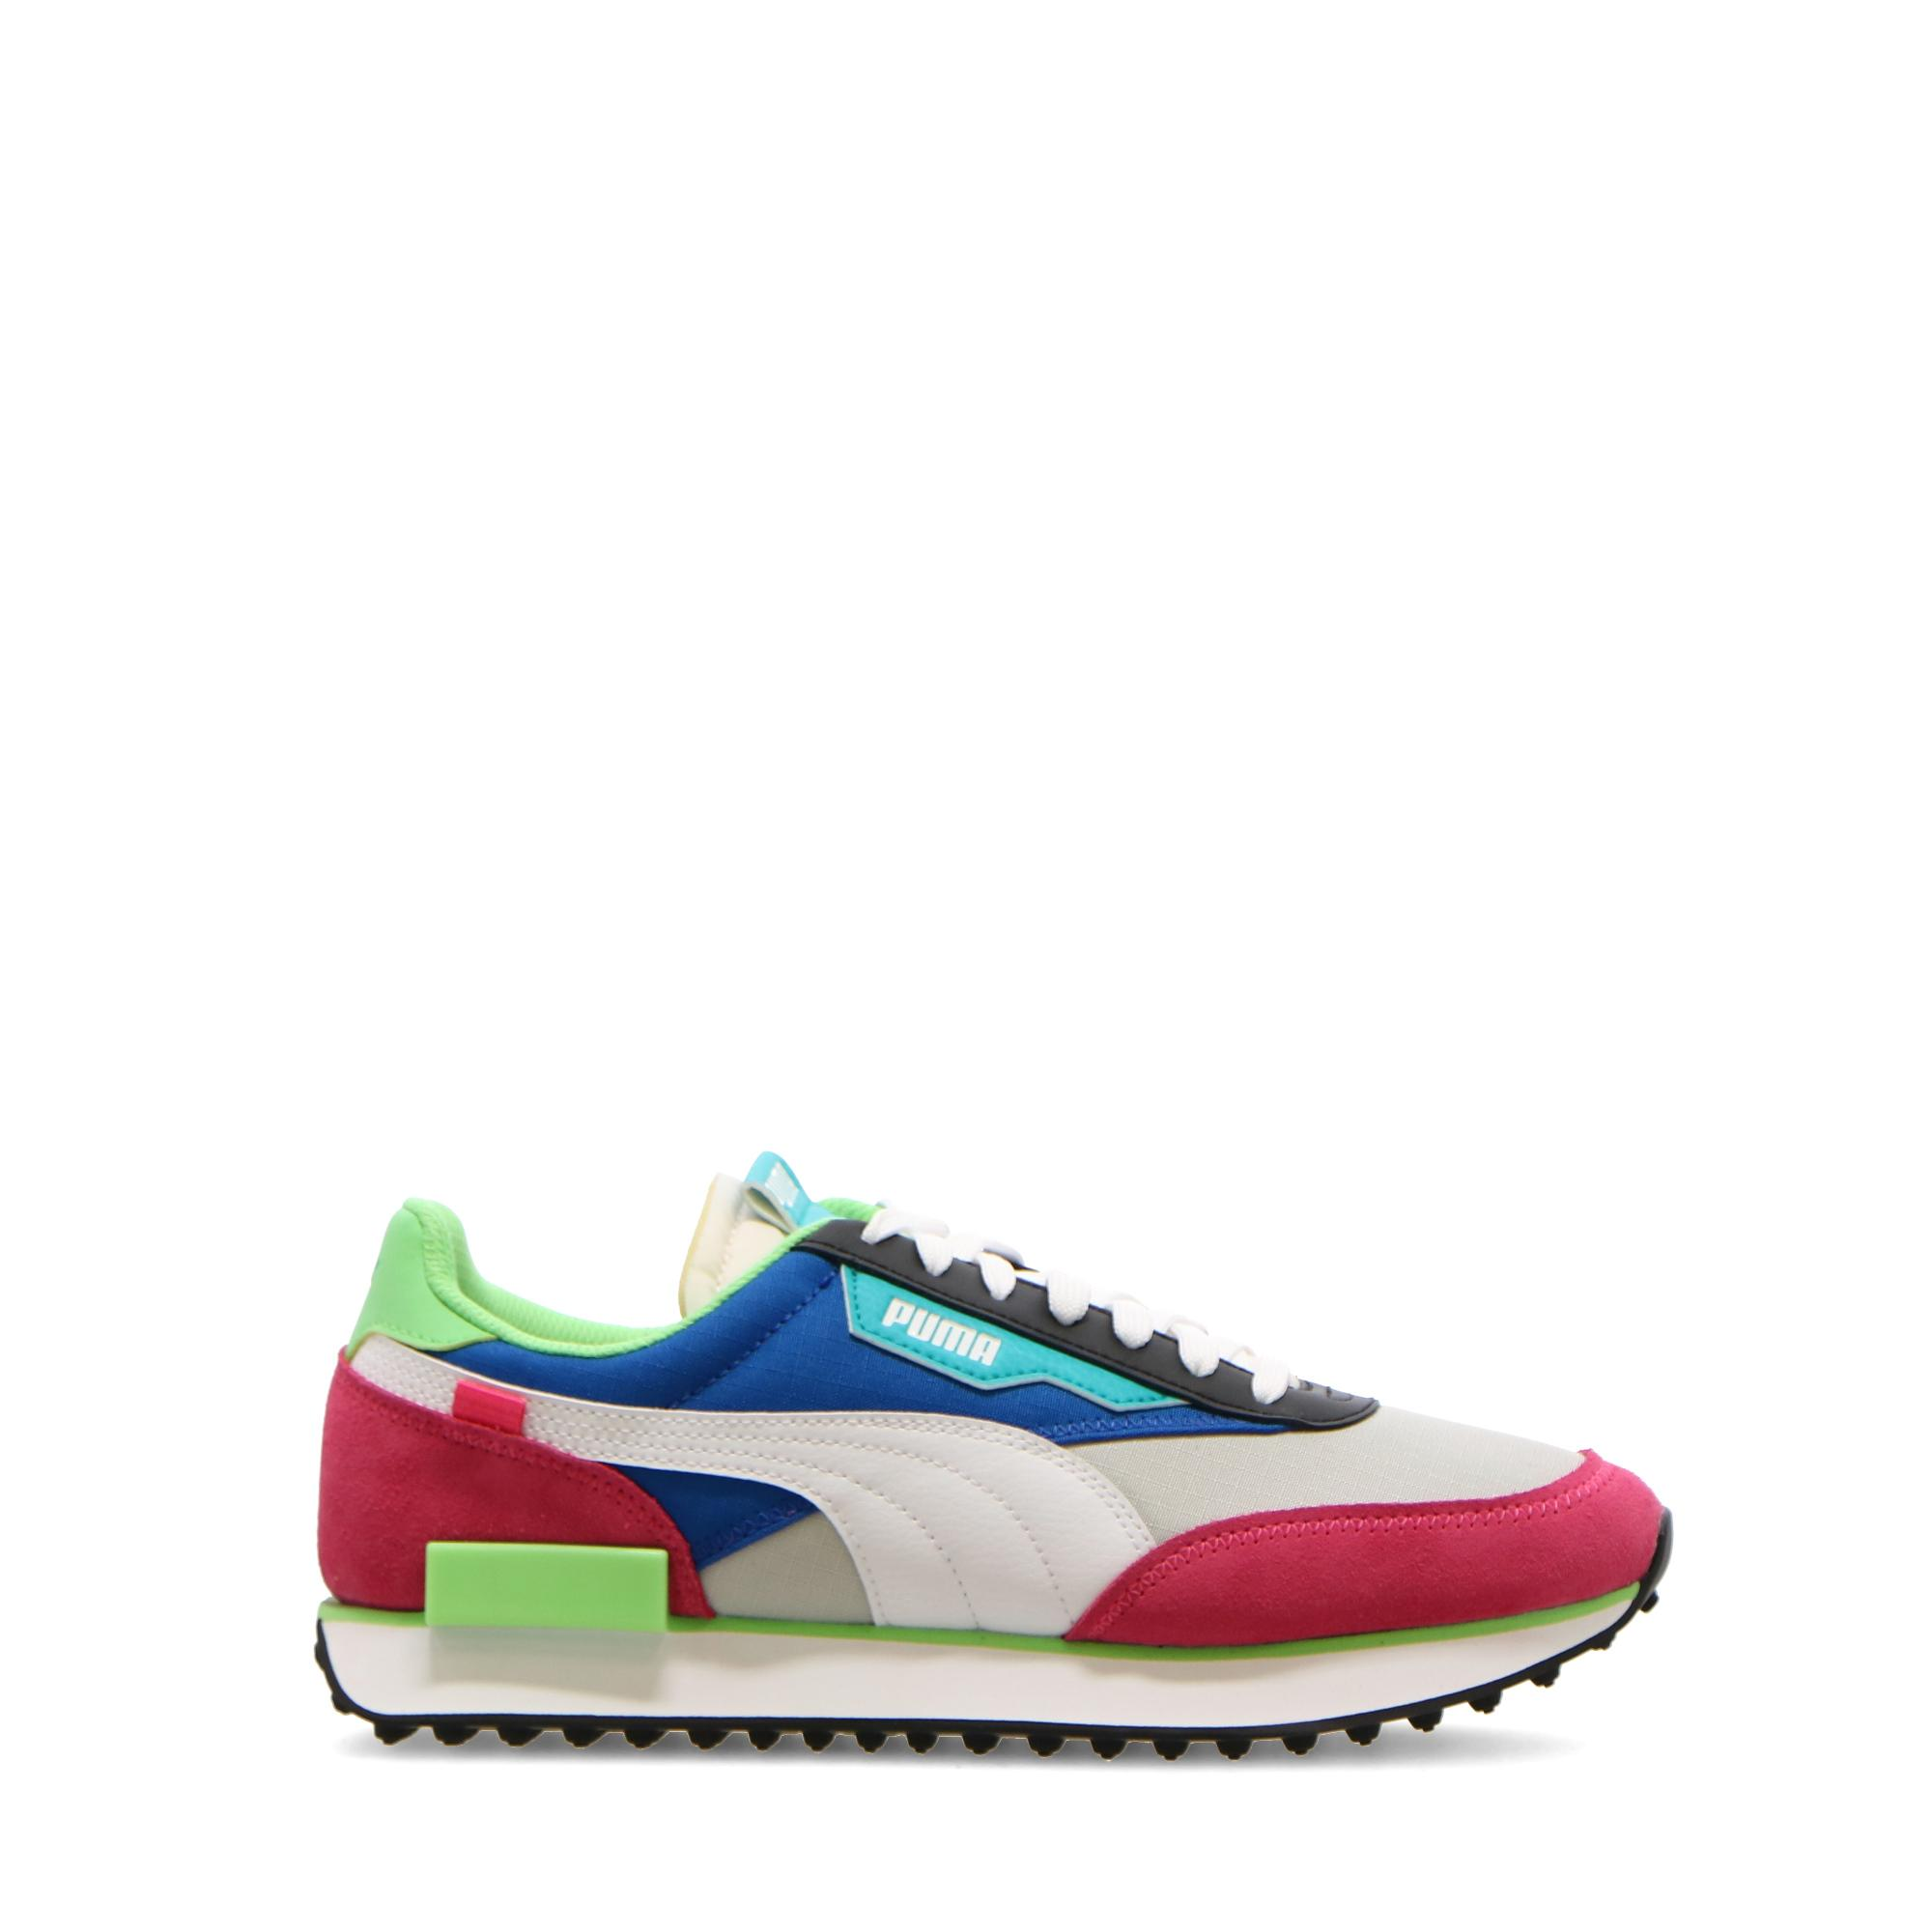 Puma Future Rider Play On Glowing pink lapis blue green